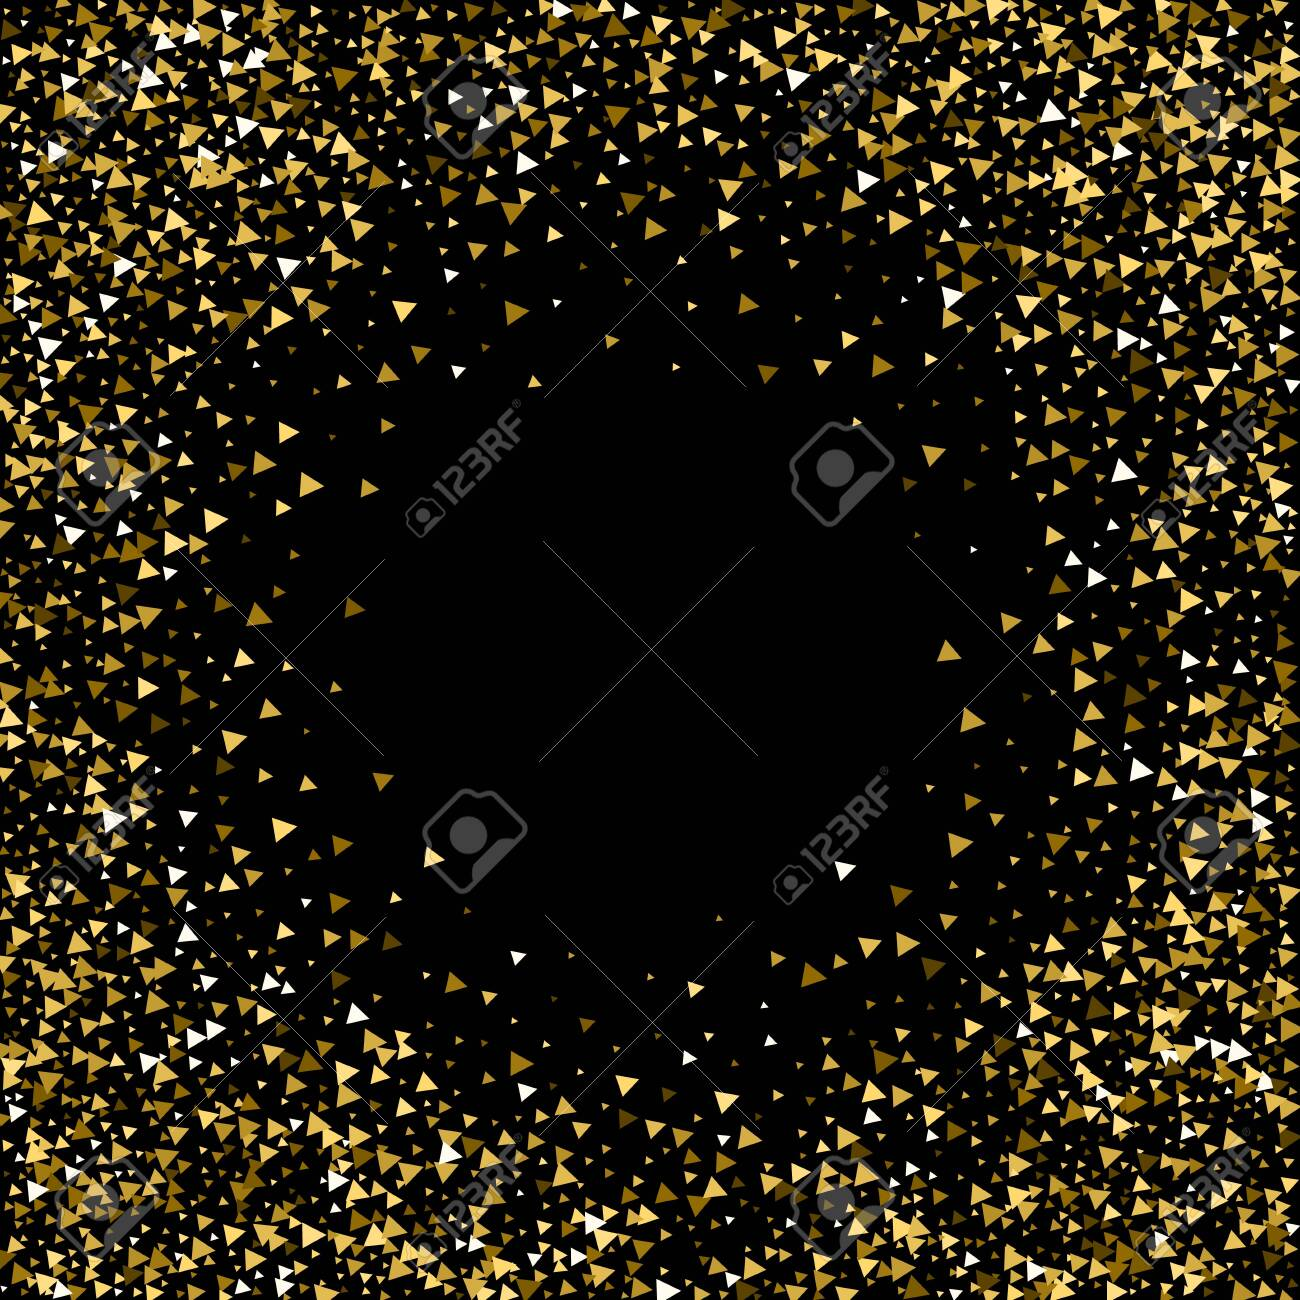 Gold triangles luxury sparkling confetti. Scattered small gold particles on black background. Appealing festive overlay template. Tempting vector illustration. - 144573806